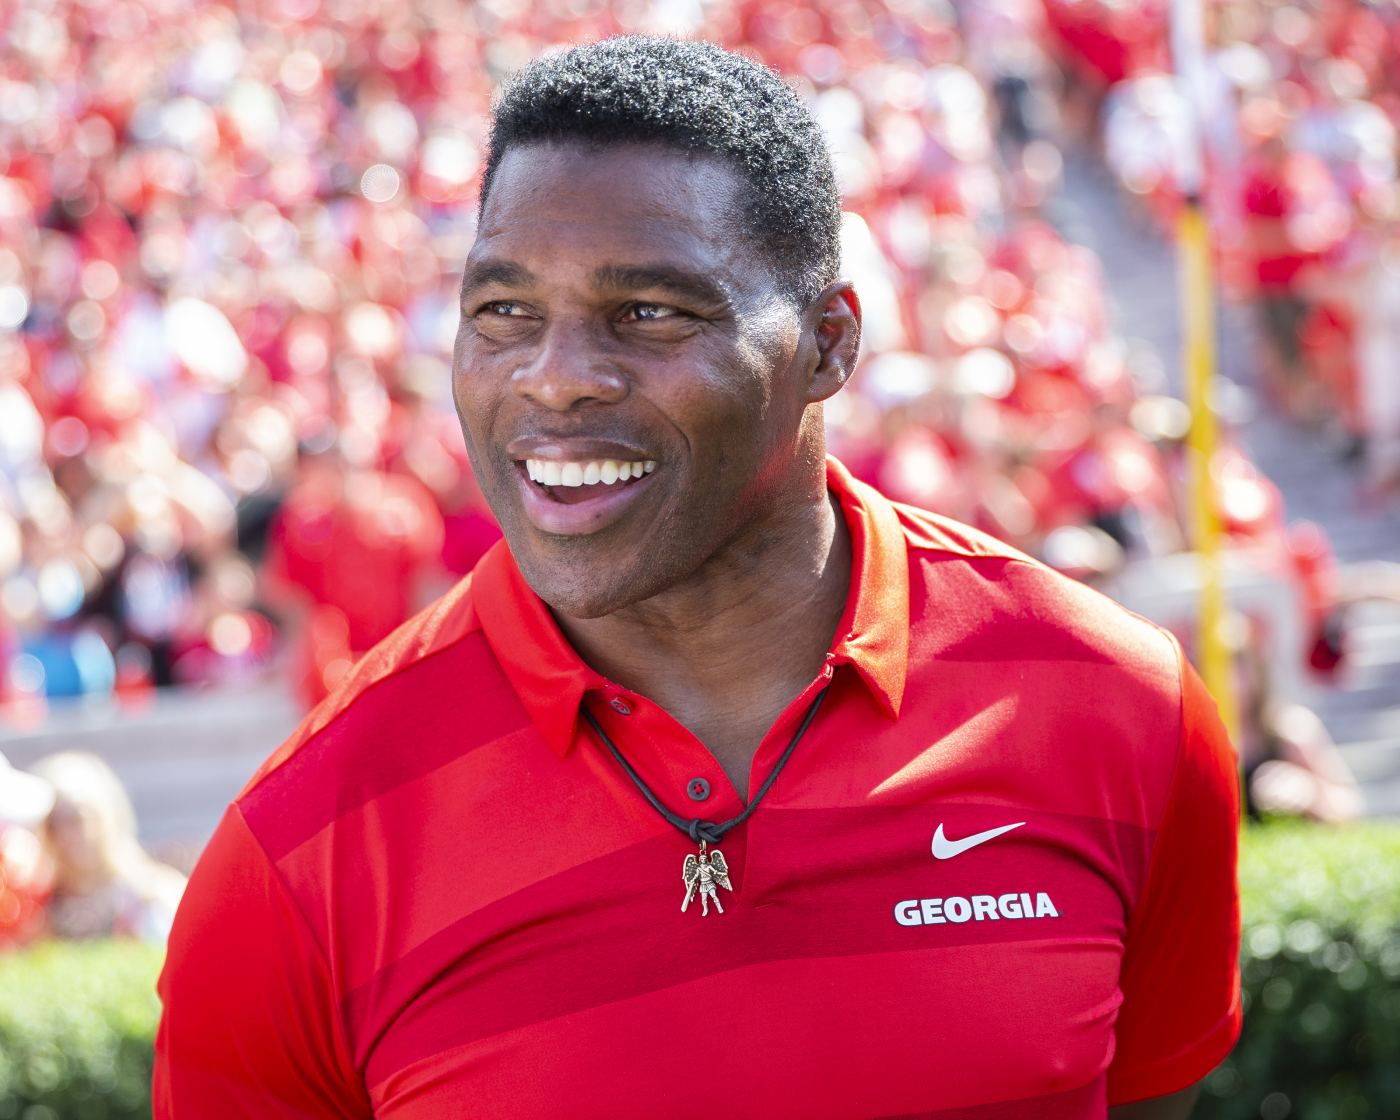 Herschel Walker had a crazy football career that led to him becoming friends with Donald Trump and racking up a massive net worth.